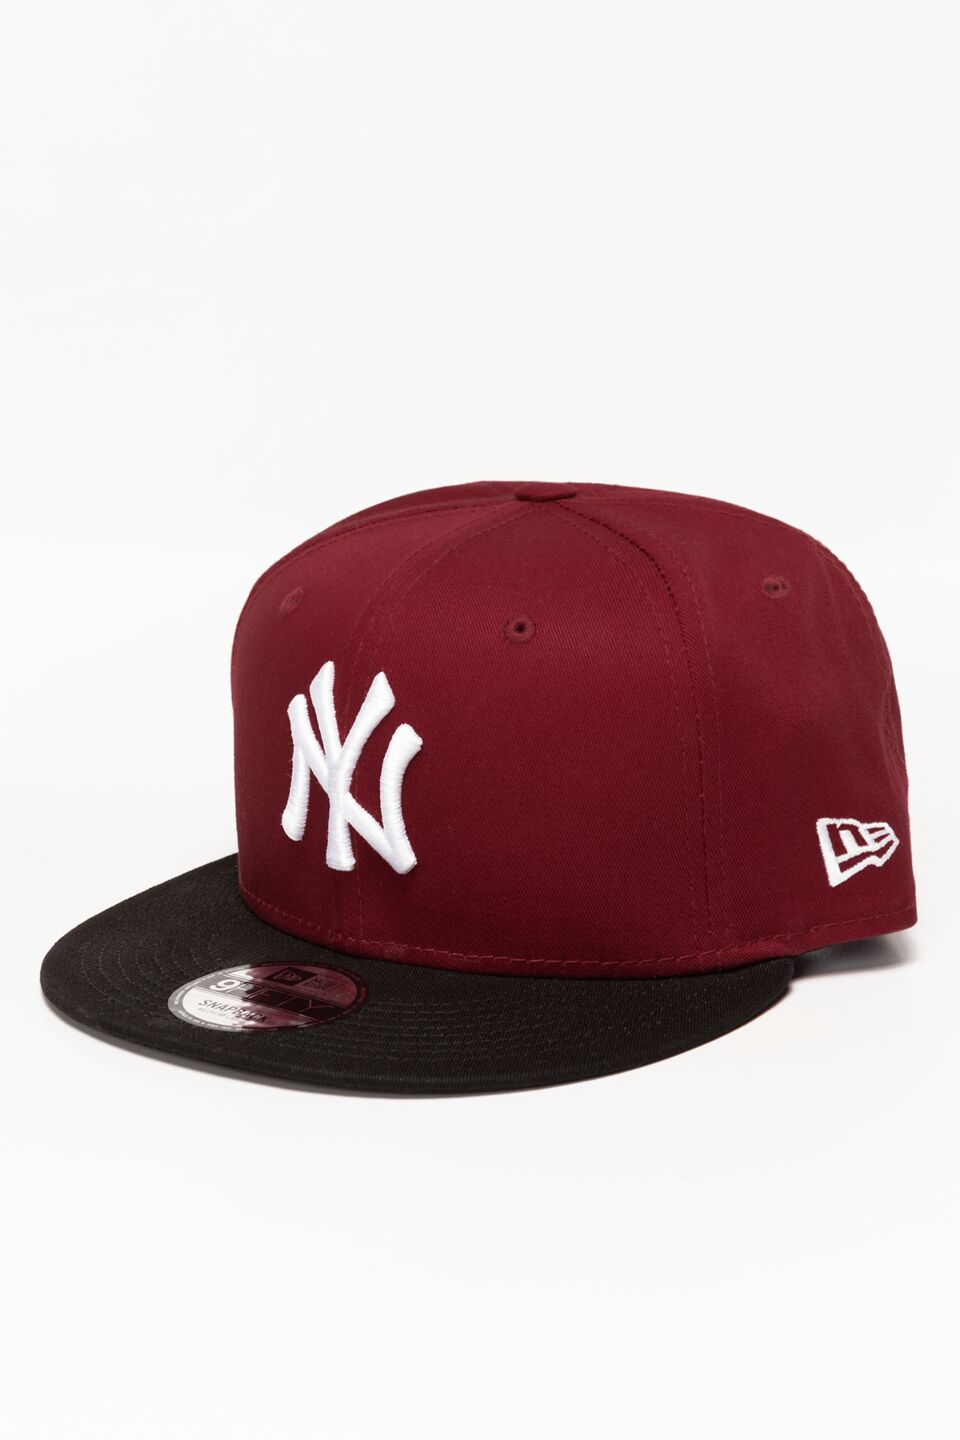 COLOUR BLOCK 9FIFTY NYY RED 12122745 RED/BLACK/WHITE